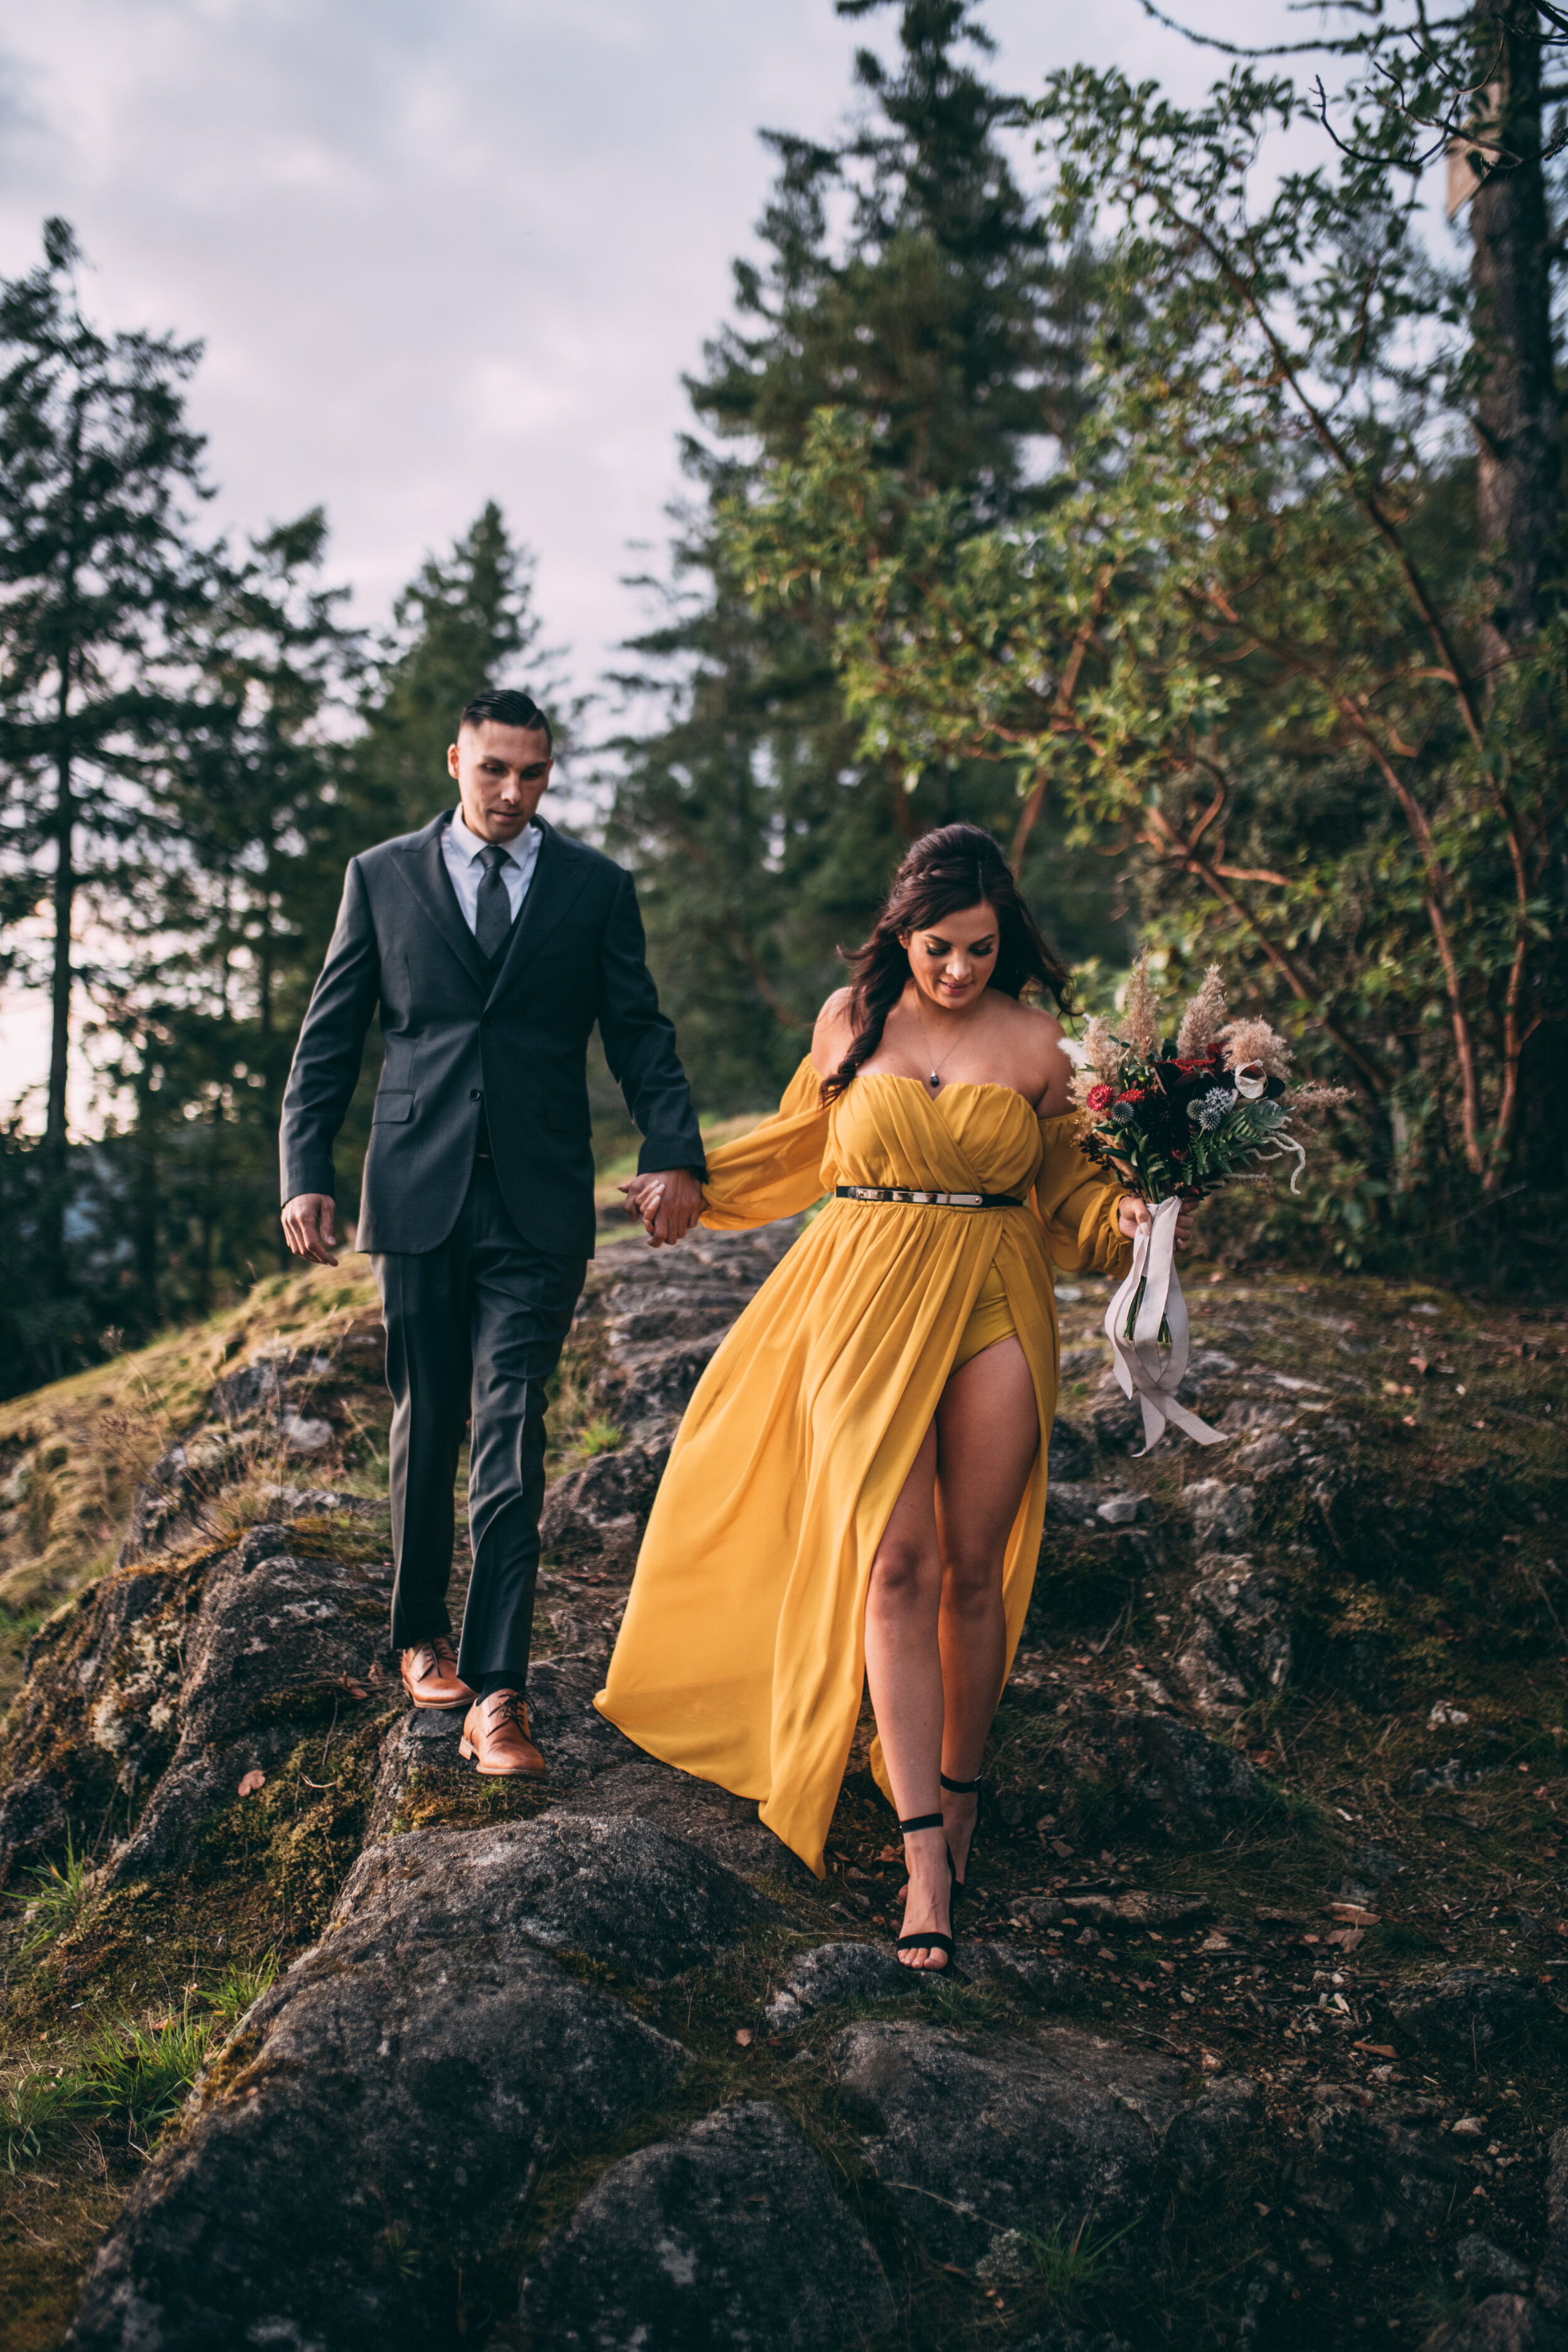 Caitlin & Kevin - Ruby Lake Engagement Session - Pender Harbour, BC - Laura Olson Photography - Sunshine Coast BC Wedding & Elopement Photographer-8773.jpg